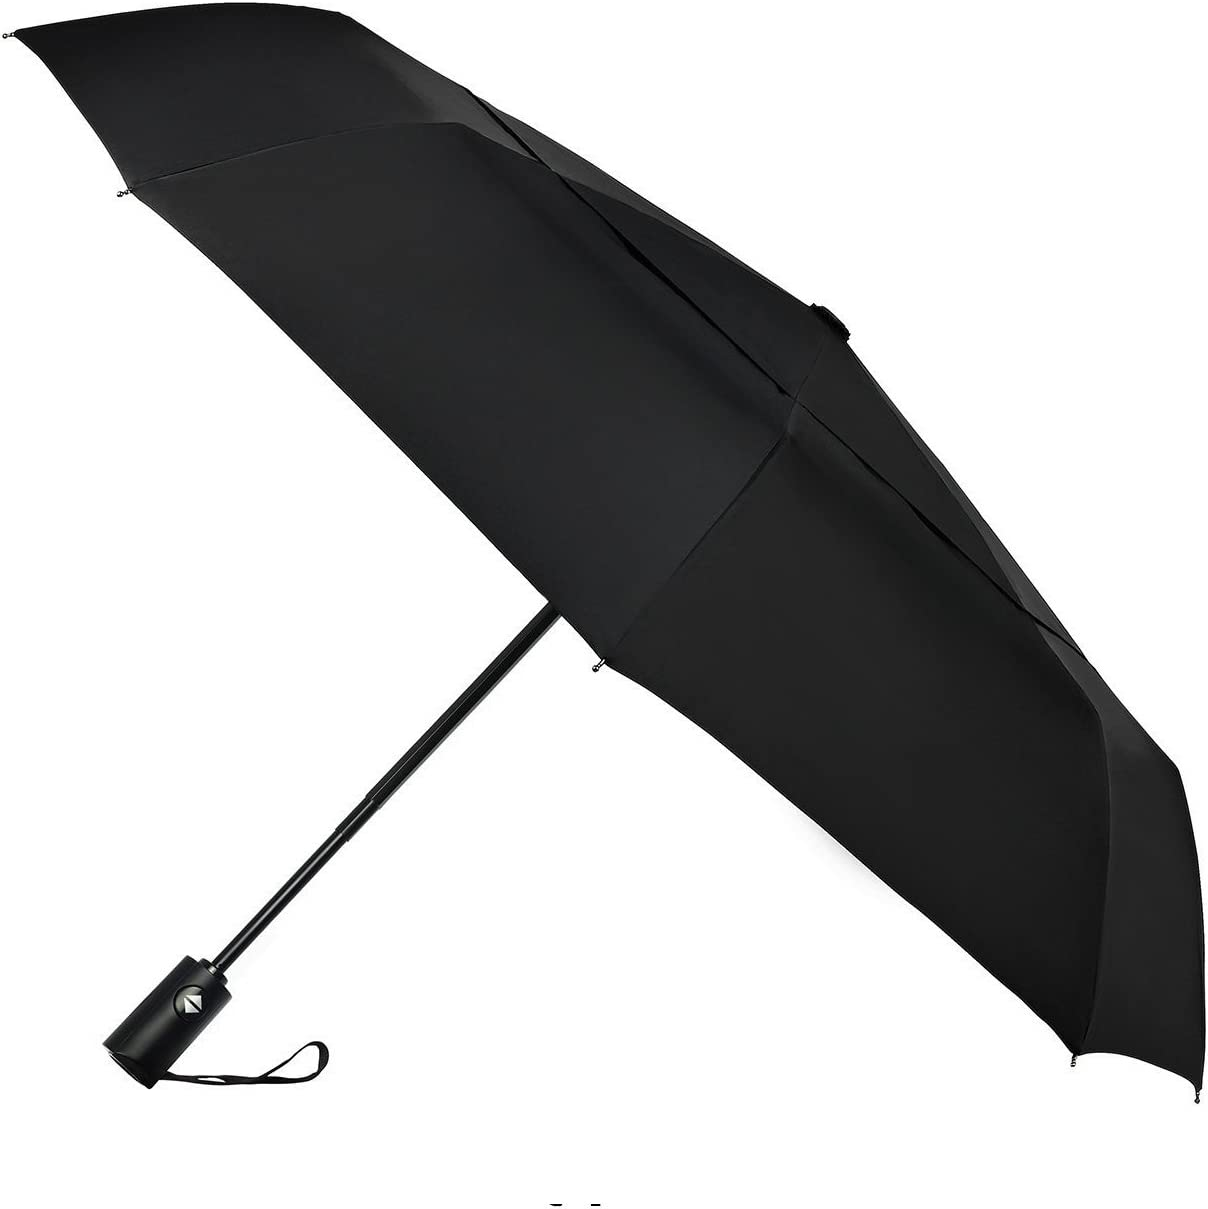 Travel Umbrella Windproof-Brown Wood Board,Durable Folding Compact Umbrella for Outdoor Rainy Use Auto Open and Close Button